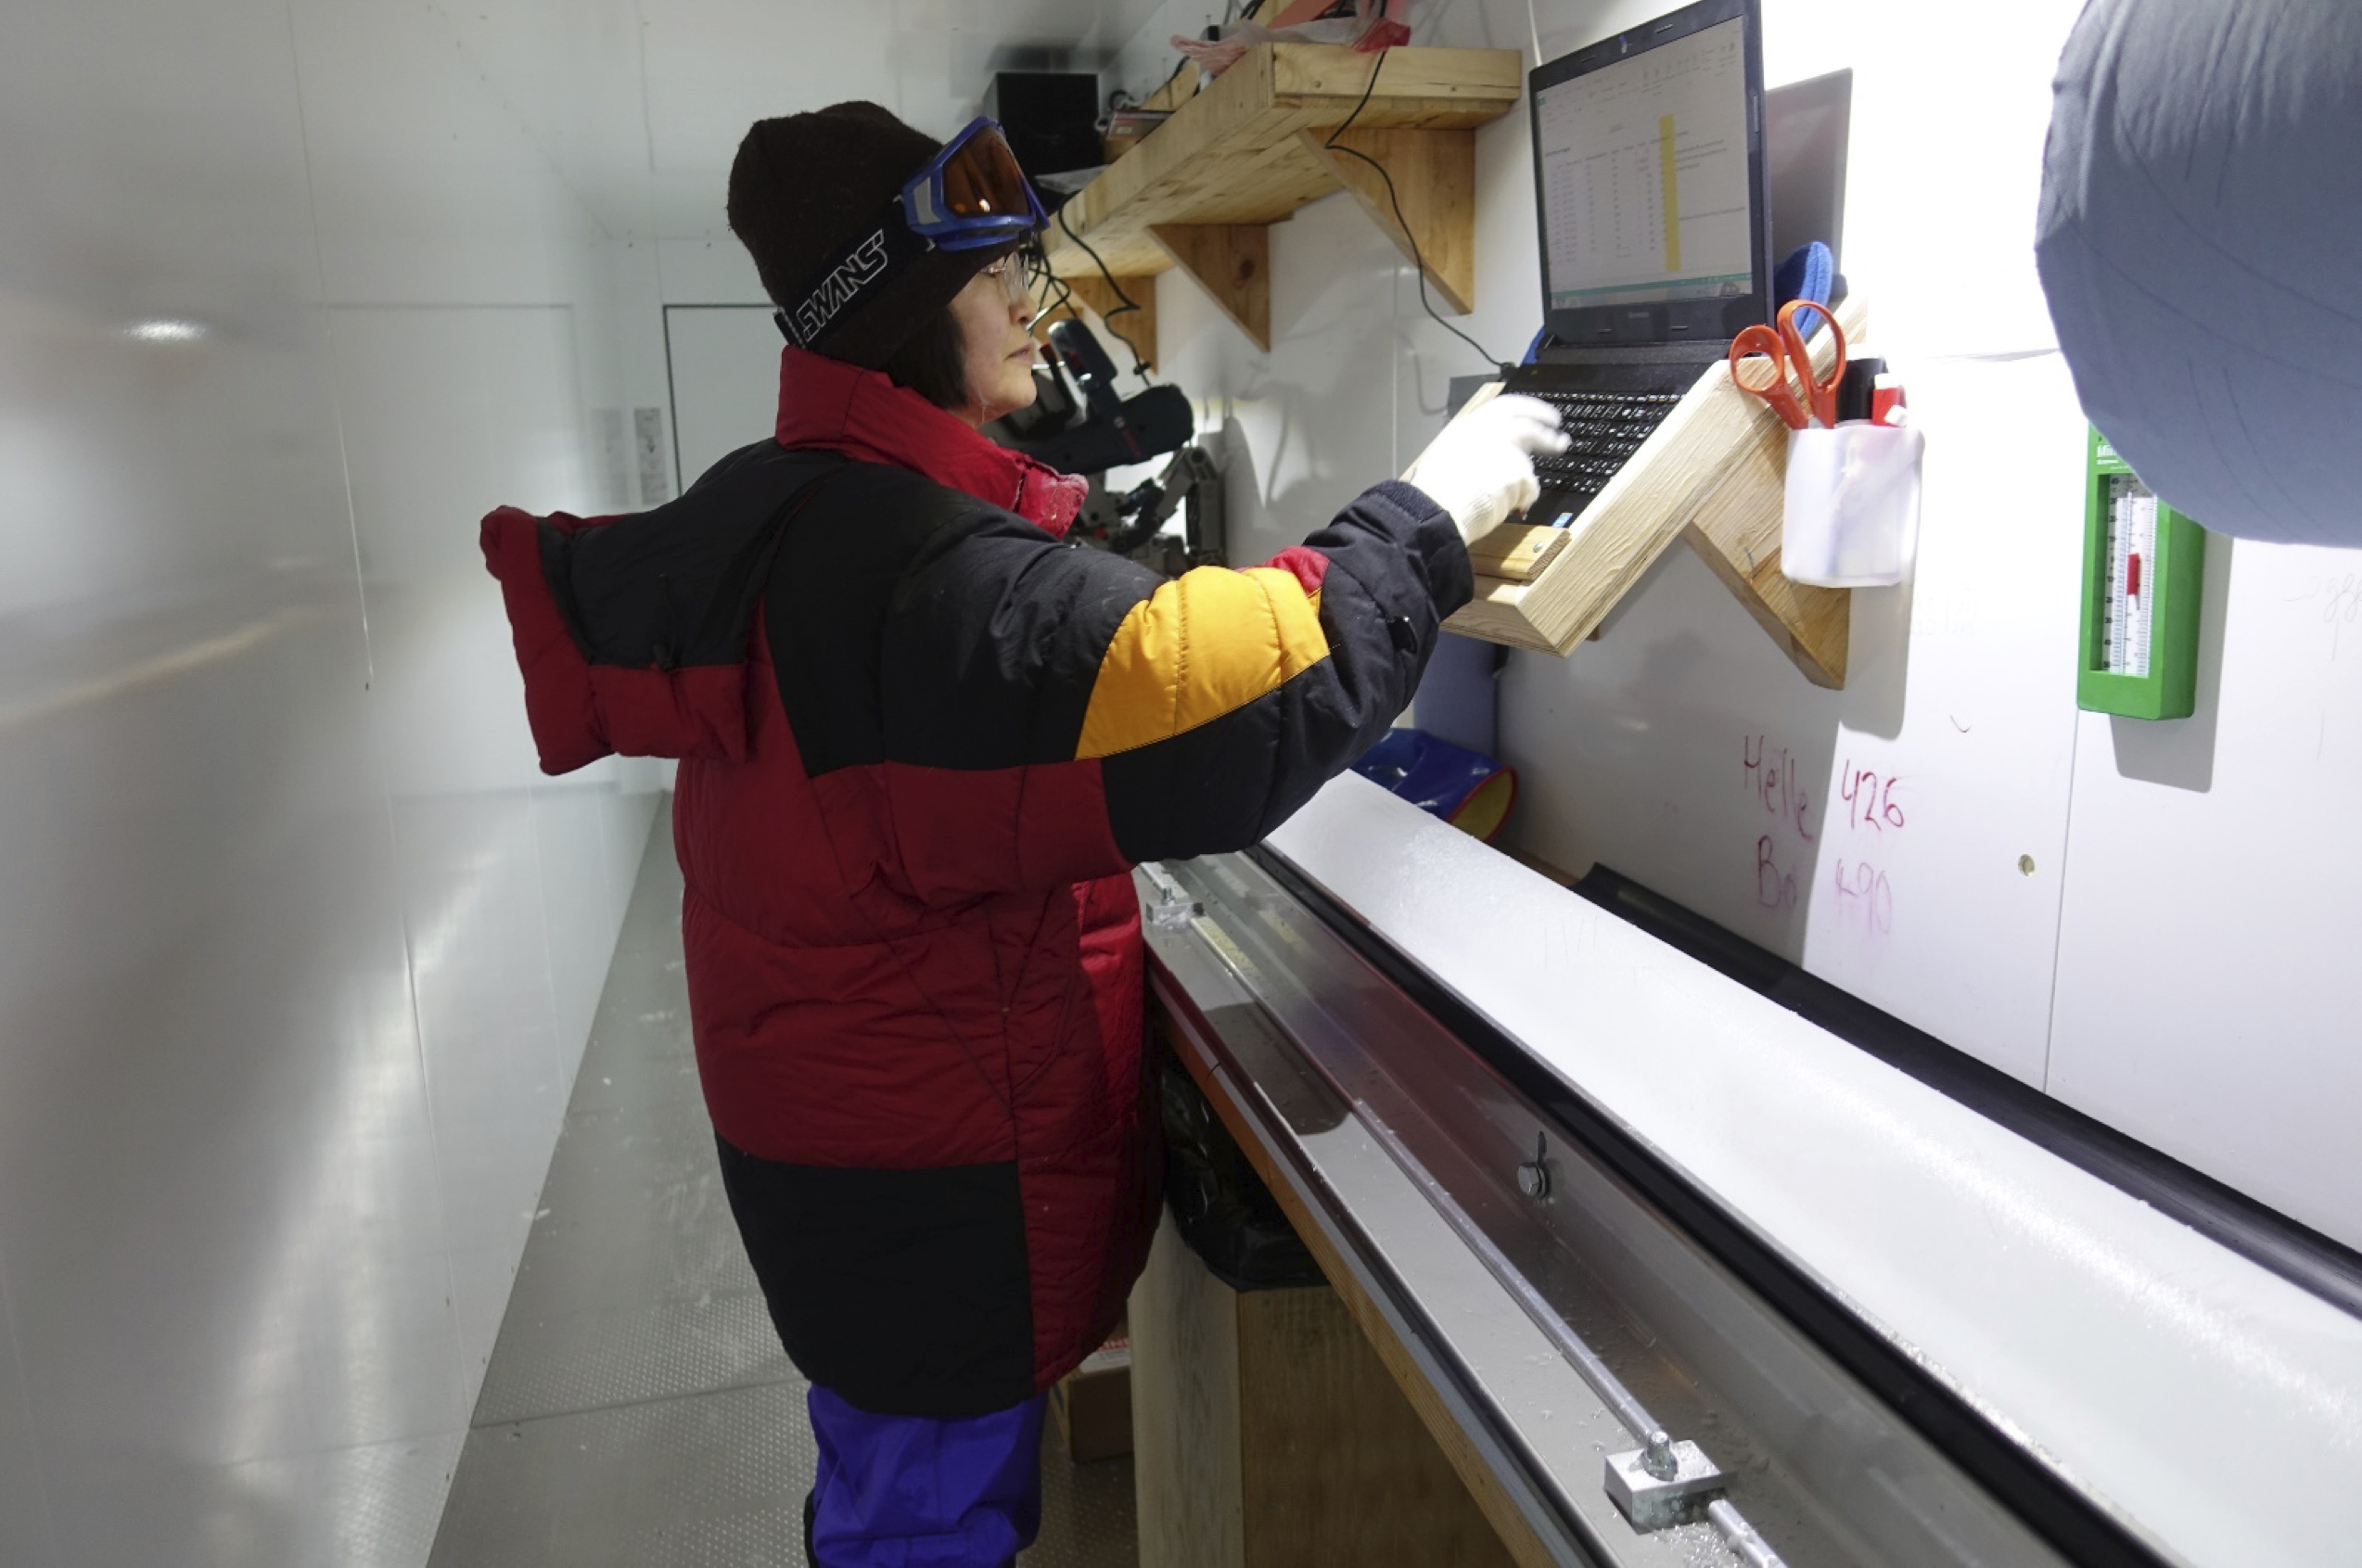 Figure 2: On site analysis of the ice core drilled at the East Greenland Ice drilling Project (EGRIP) field station on the Greenland Ice Sheet.